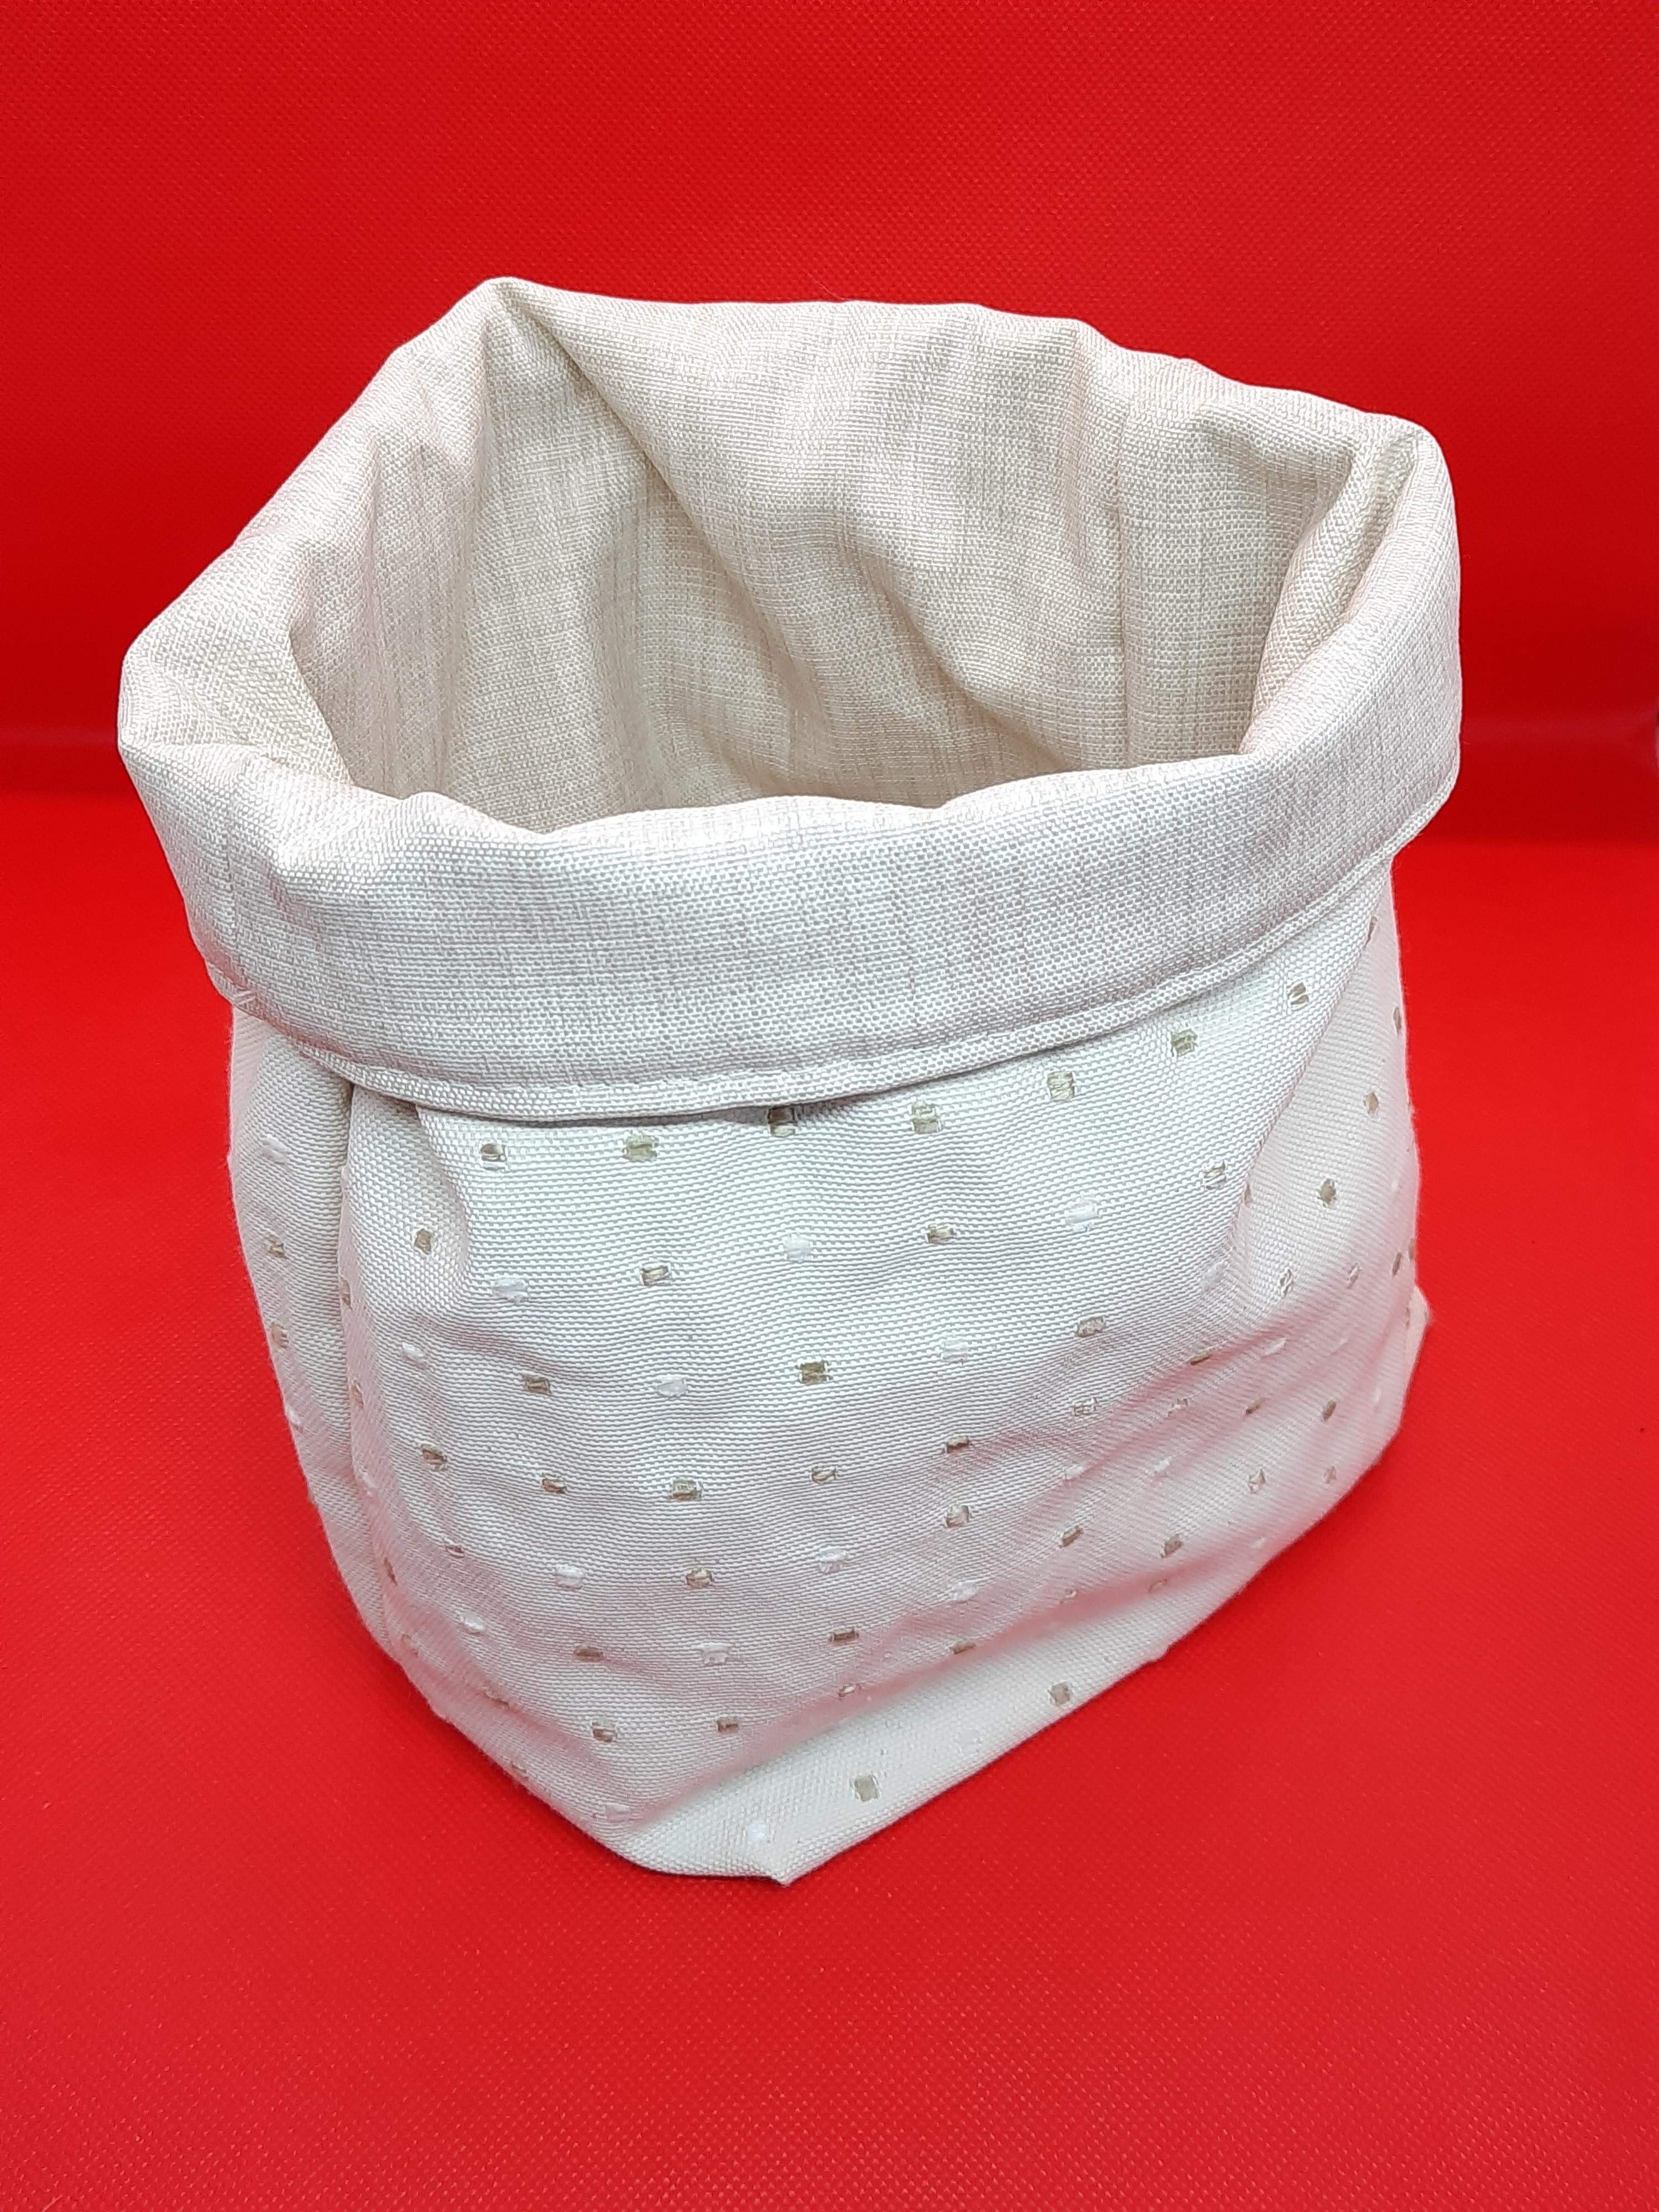 Storage bag made from extra bedroom curtain material